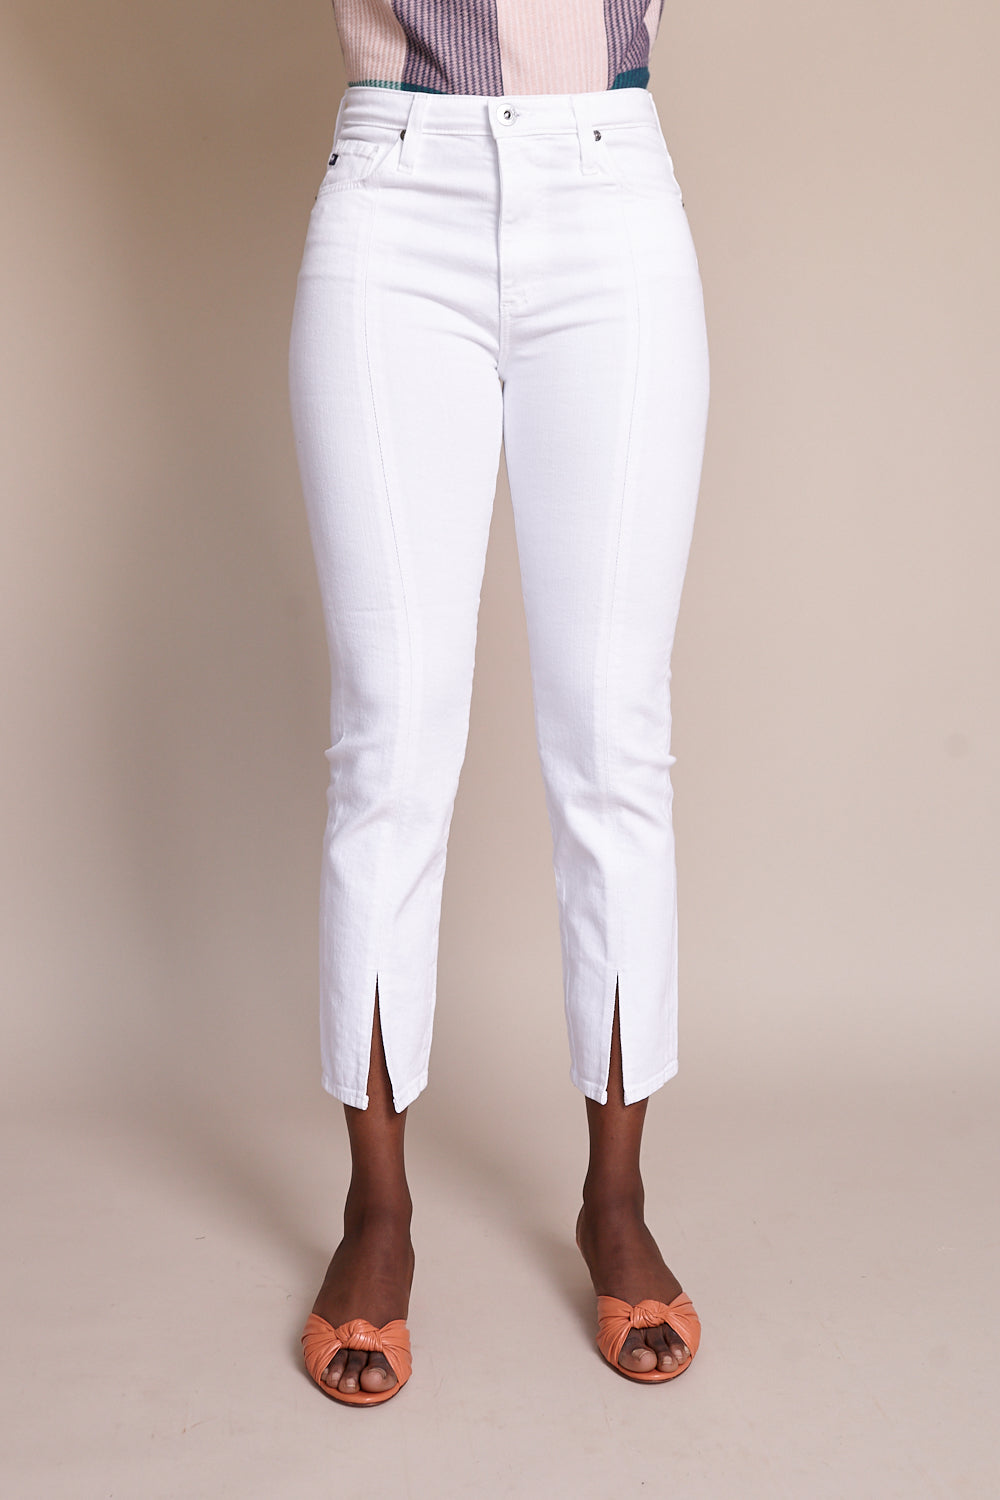 AG Jeans Isabelle Straight Crop Jean With Slit in 1 Year Tonal White - Vert & Vogue